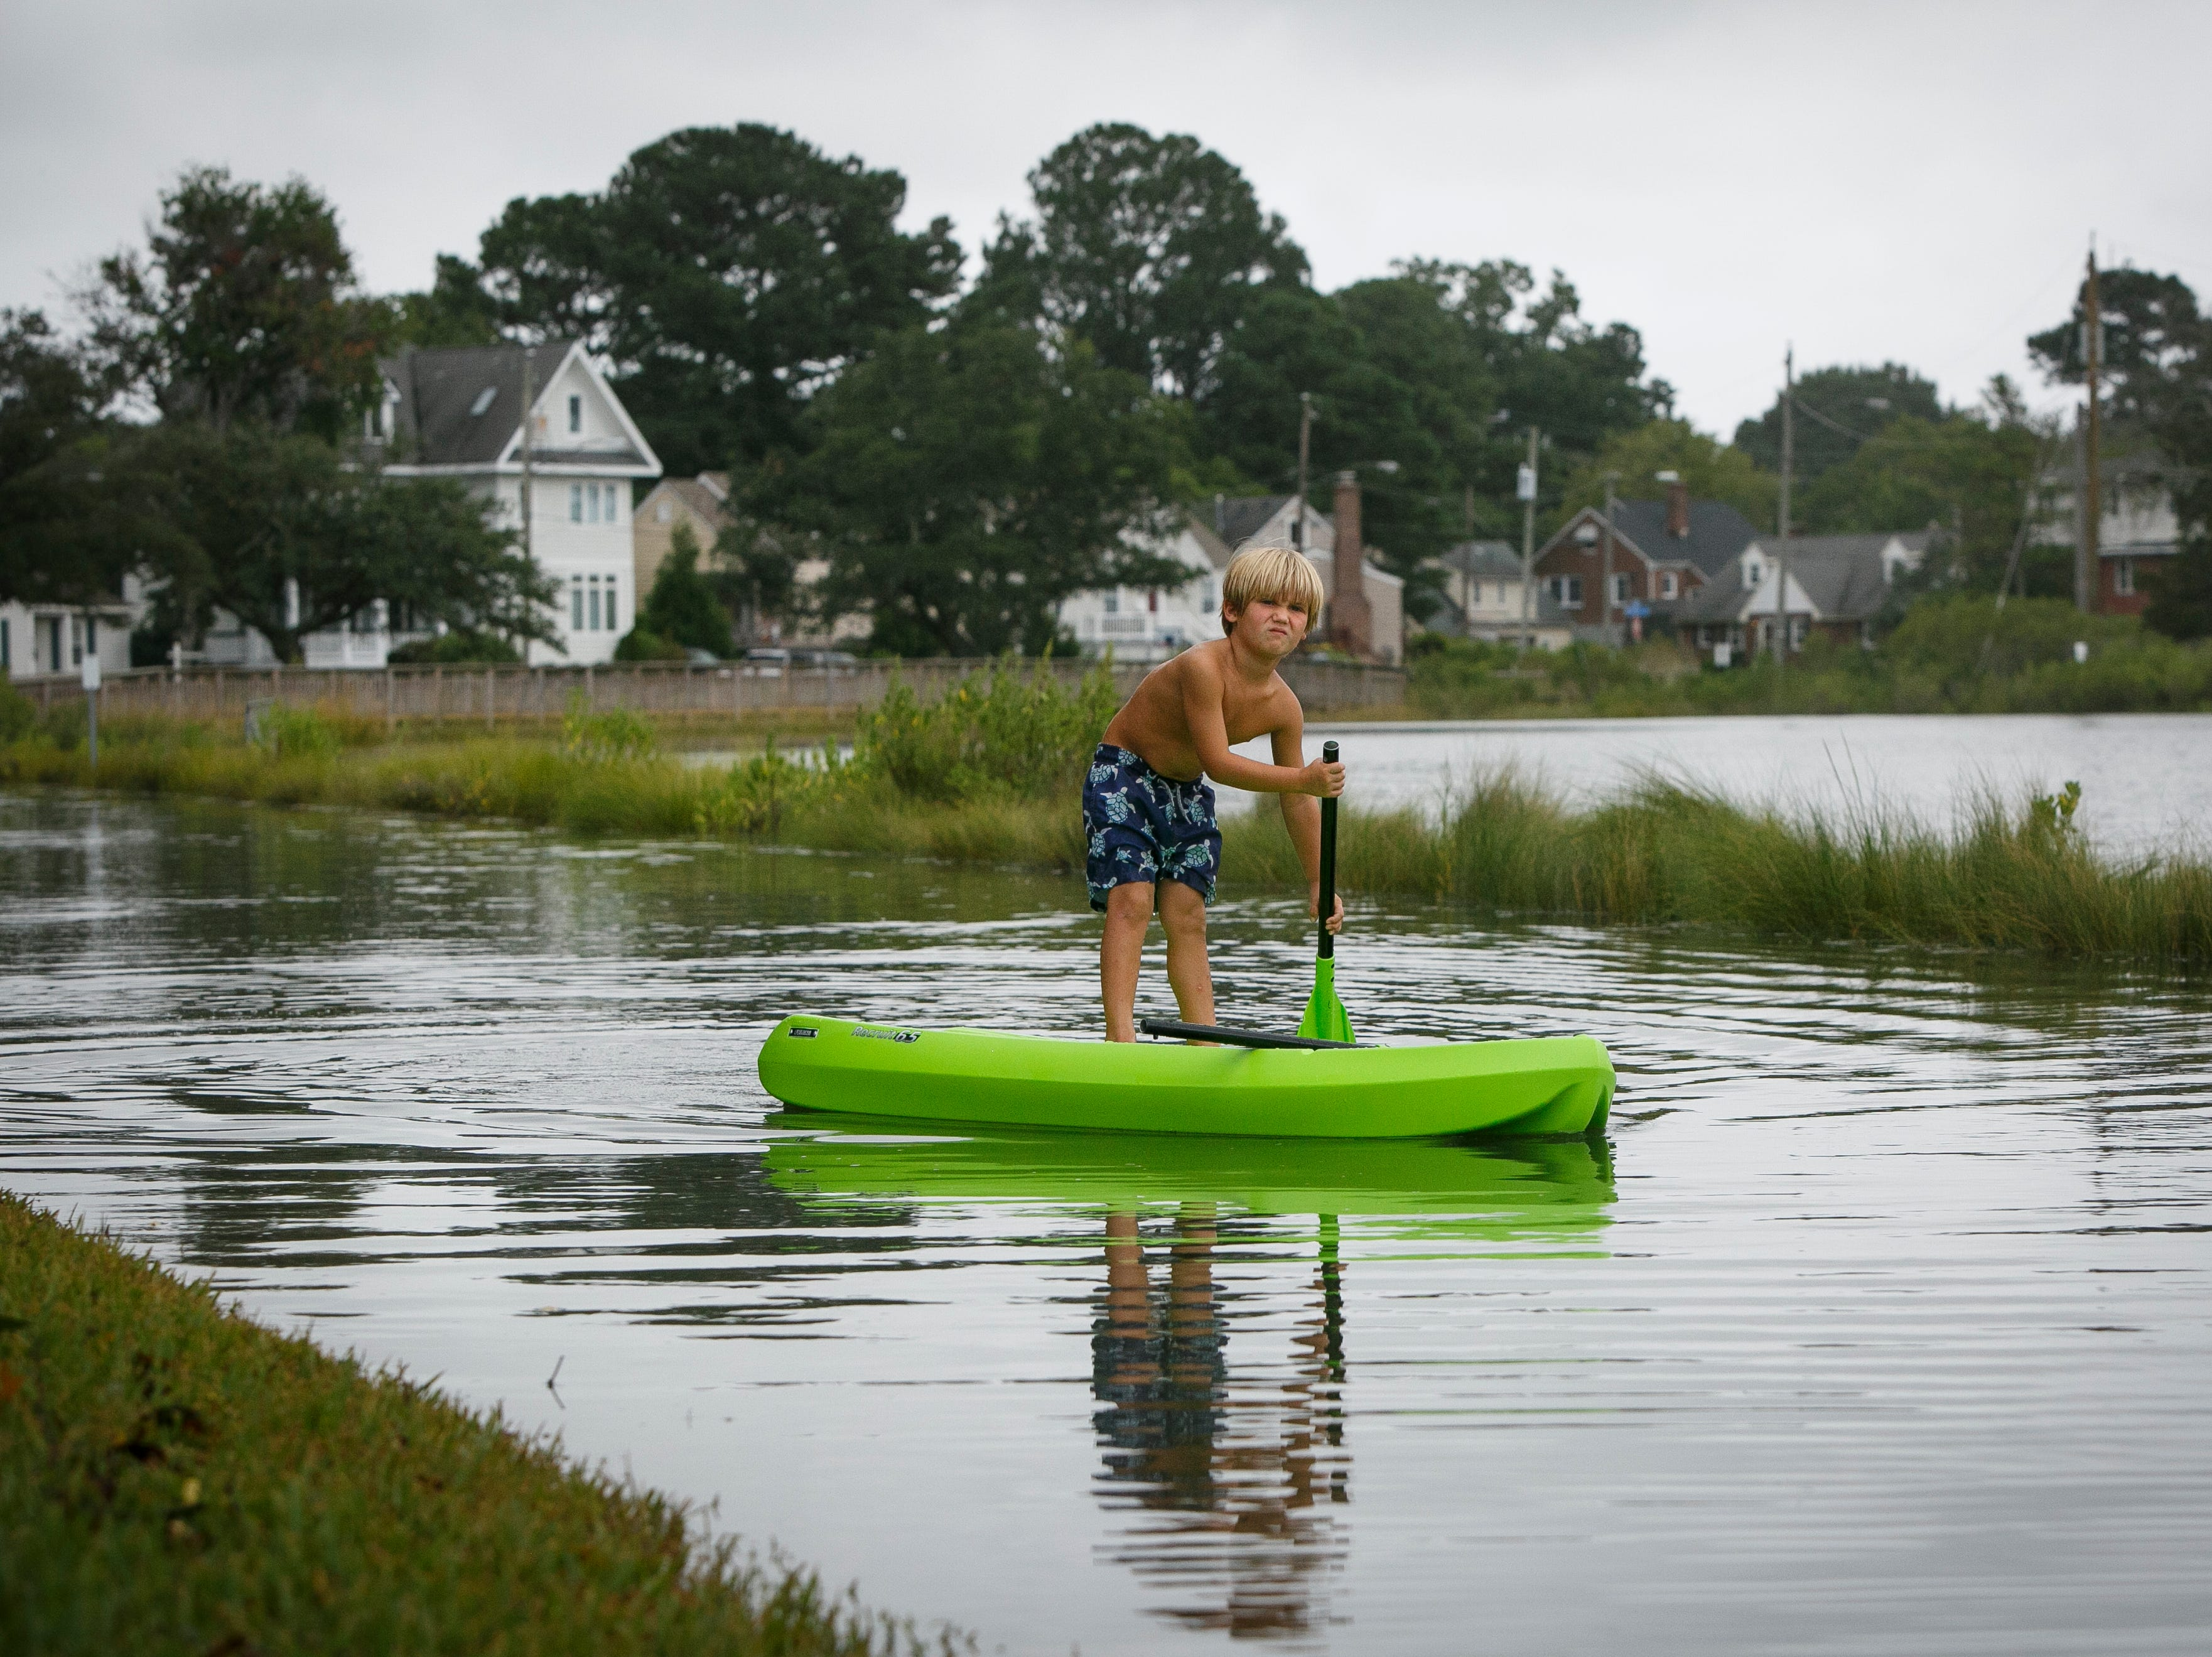 Carter Challoner, 5, paddles through flooding during high tide near Myrtle Park in the Larchmont neighborhood in Norfolk, Va., Friday, Sept.  14, 2018.